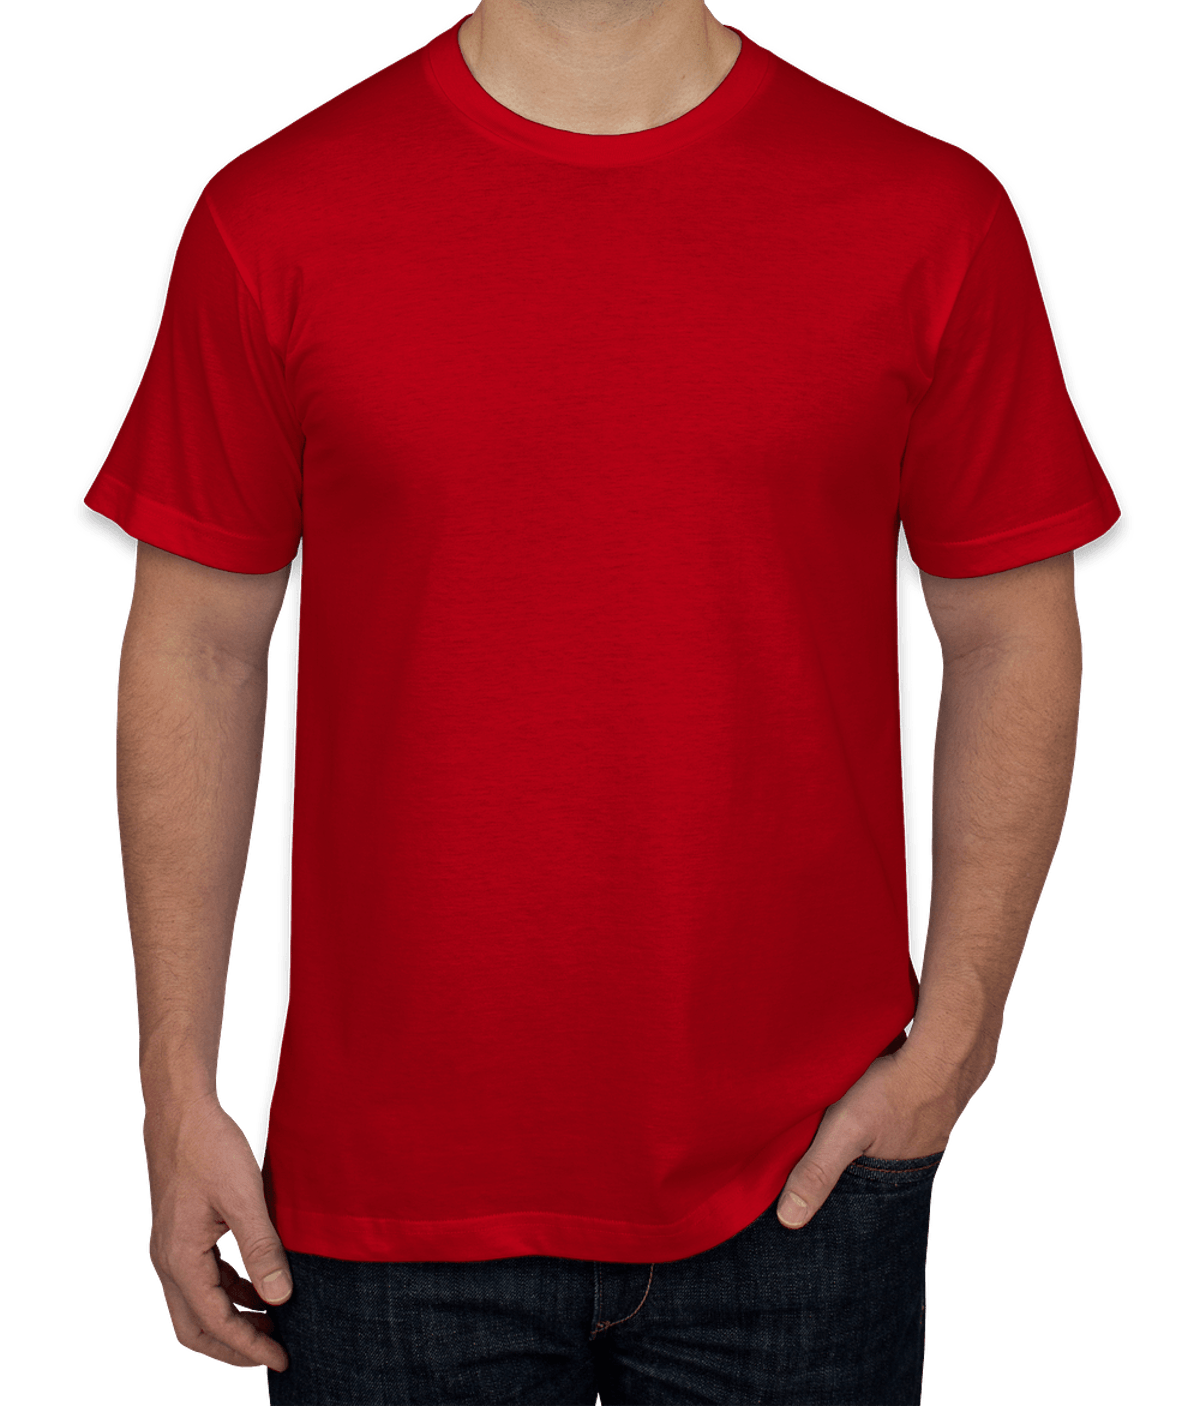 Youth American Apparel USA-Made Jersey T-shirt